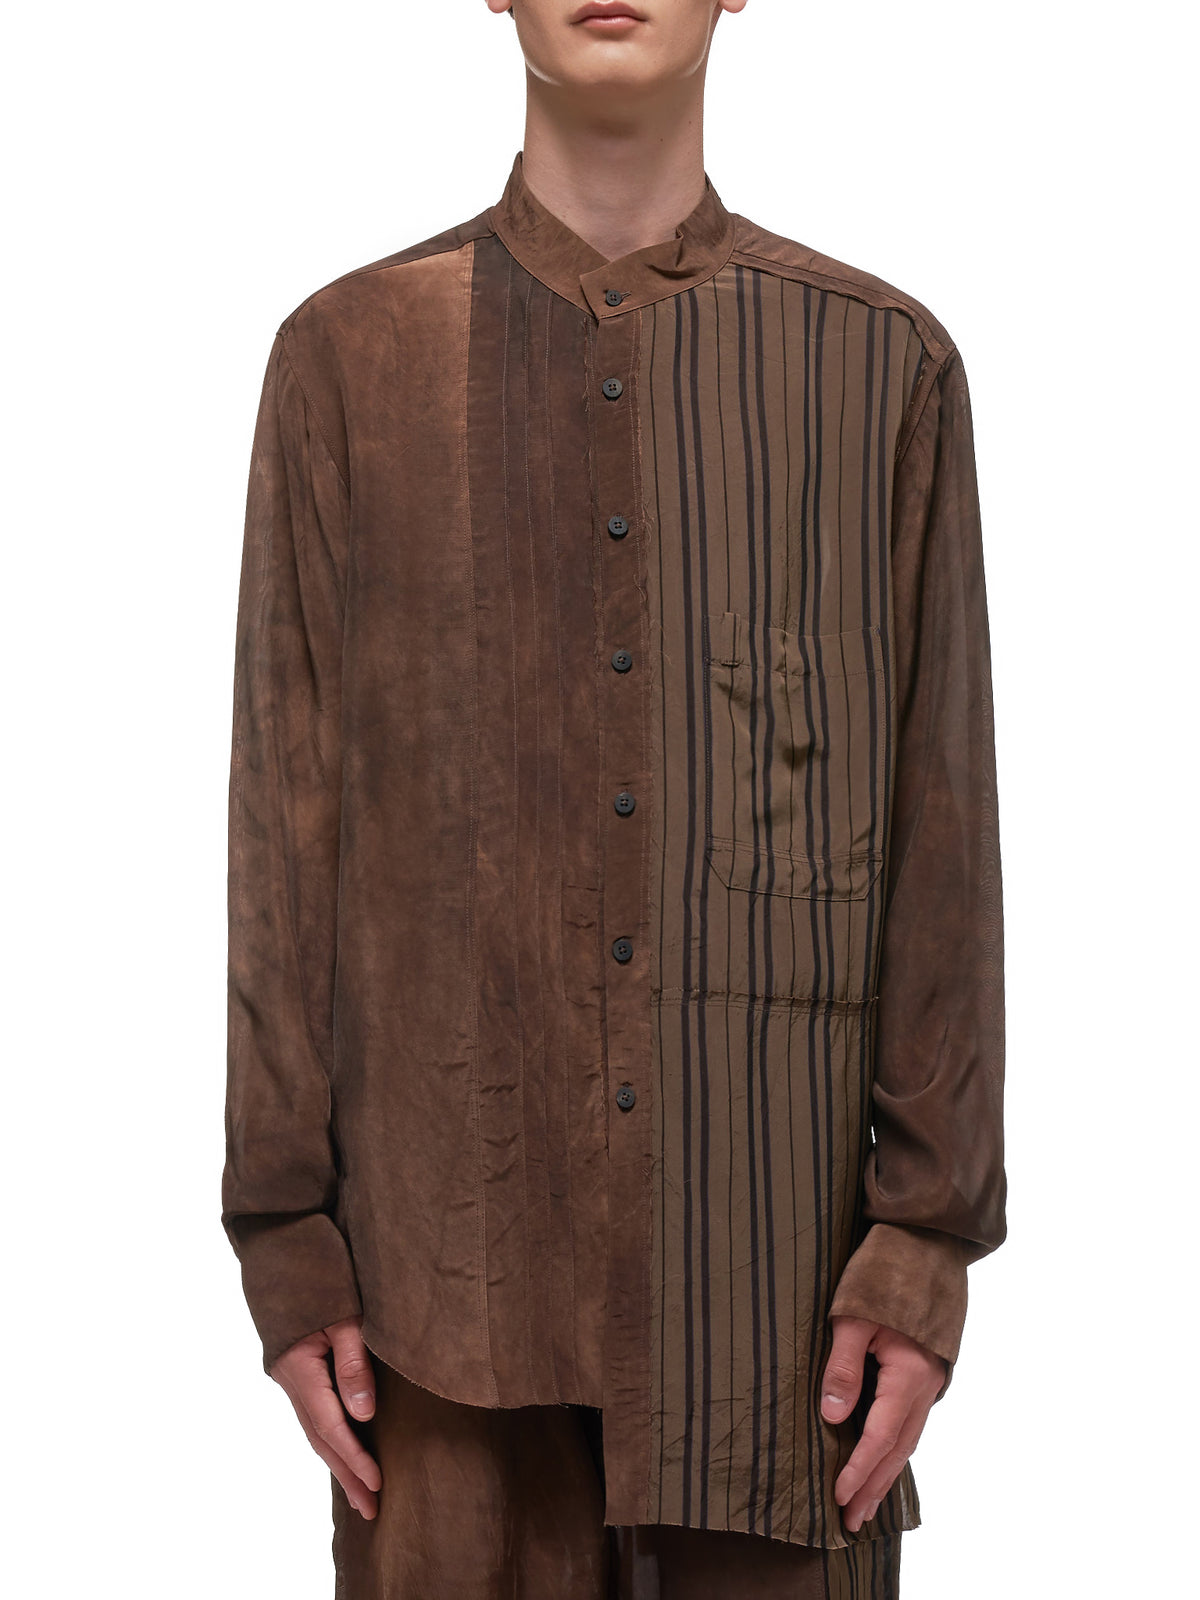 Hybrid Pattern Mandarin Stand Collar Shirt (0704-DK-BROWN)